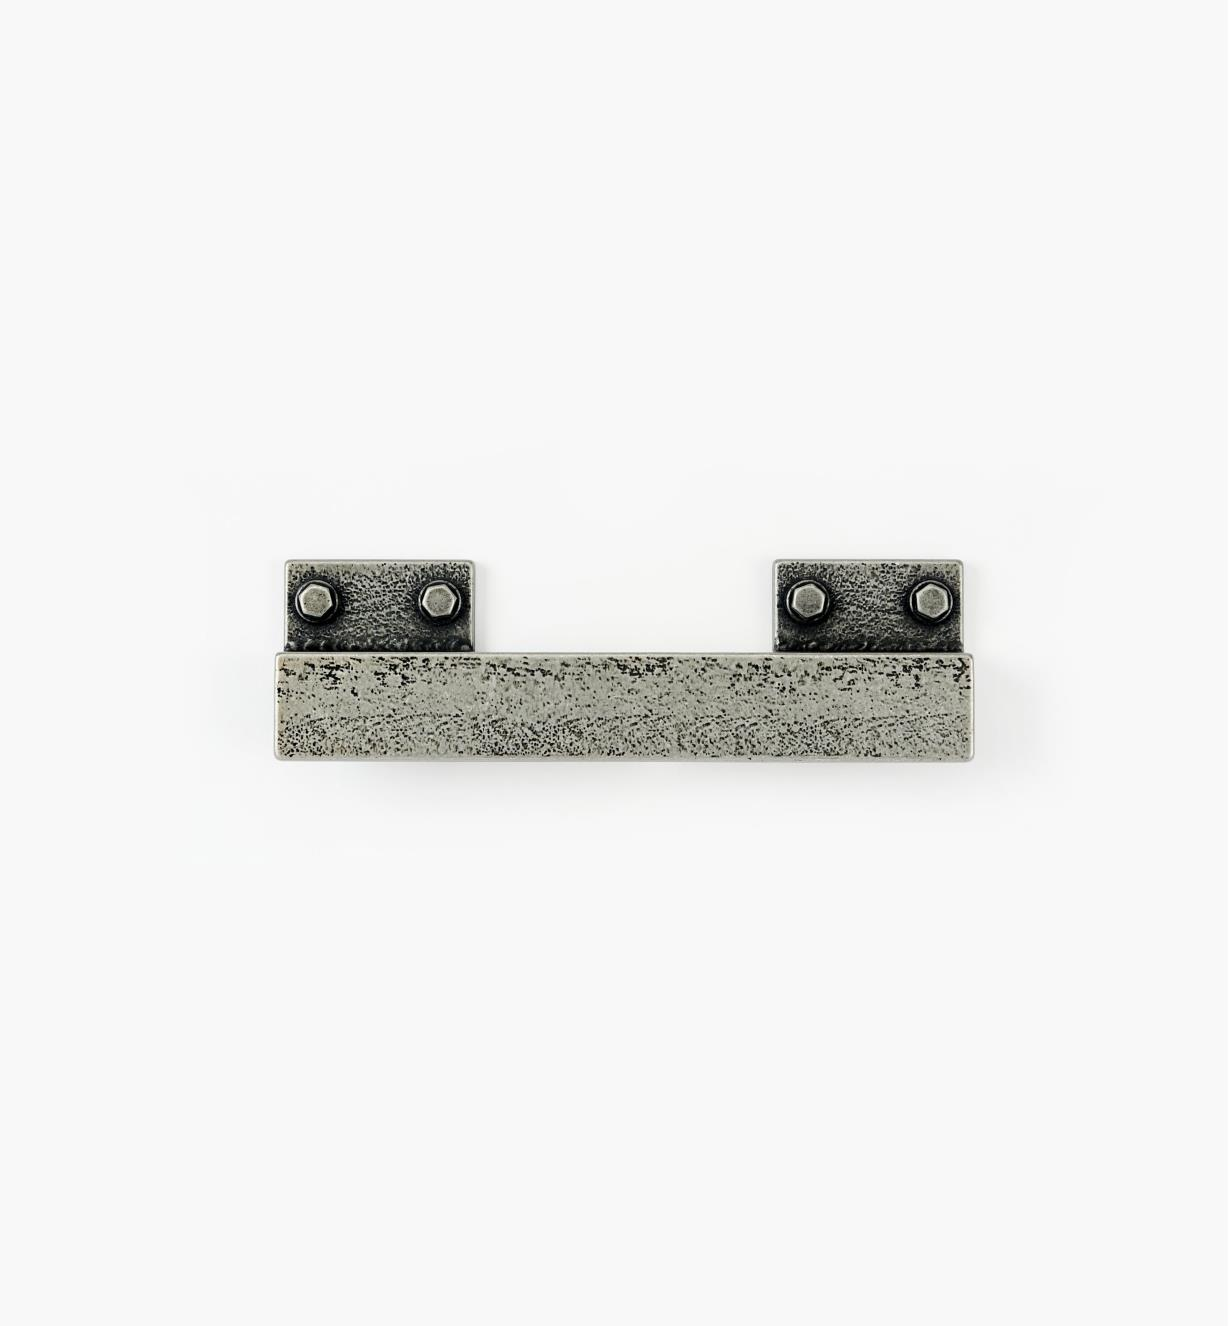 00A7833 - Factory Hardware 160/96mm Pewter Handle, each